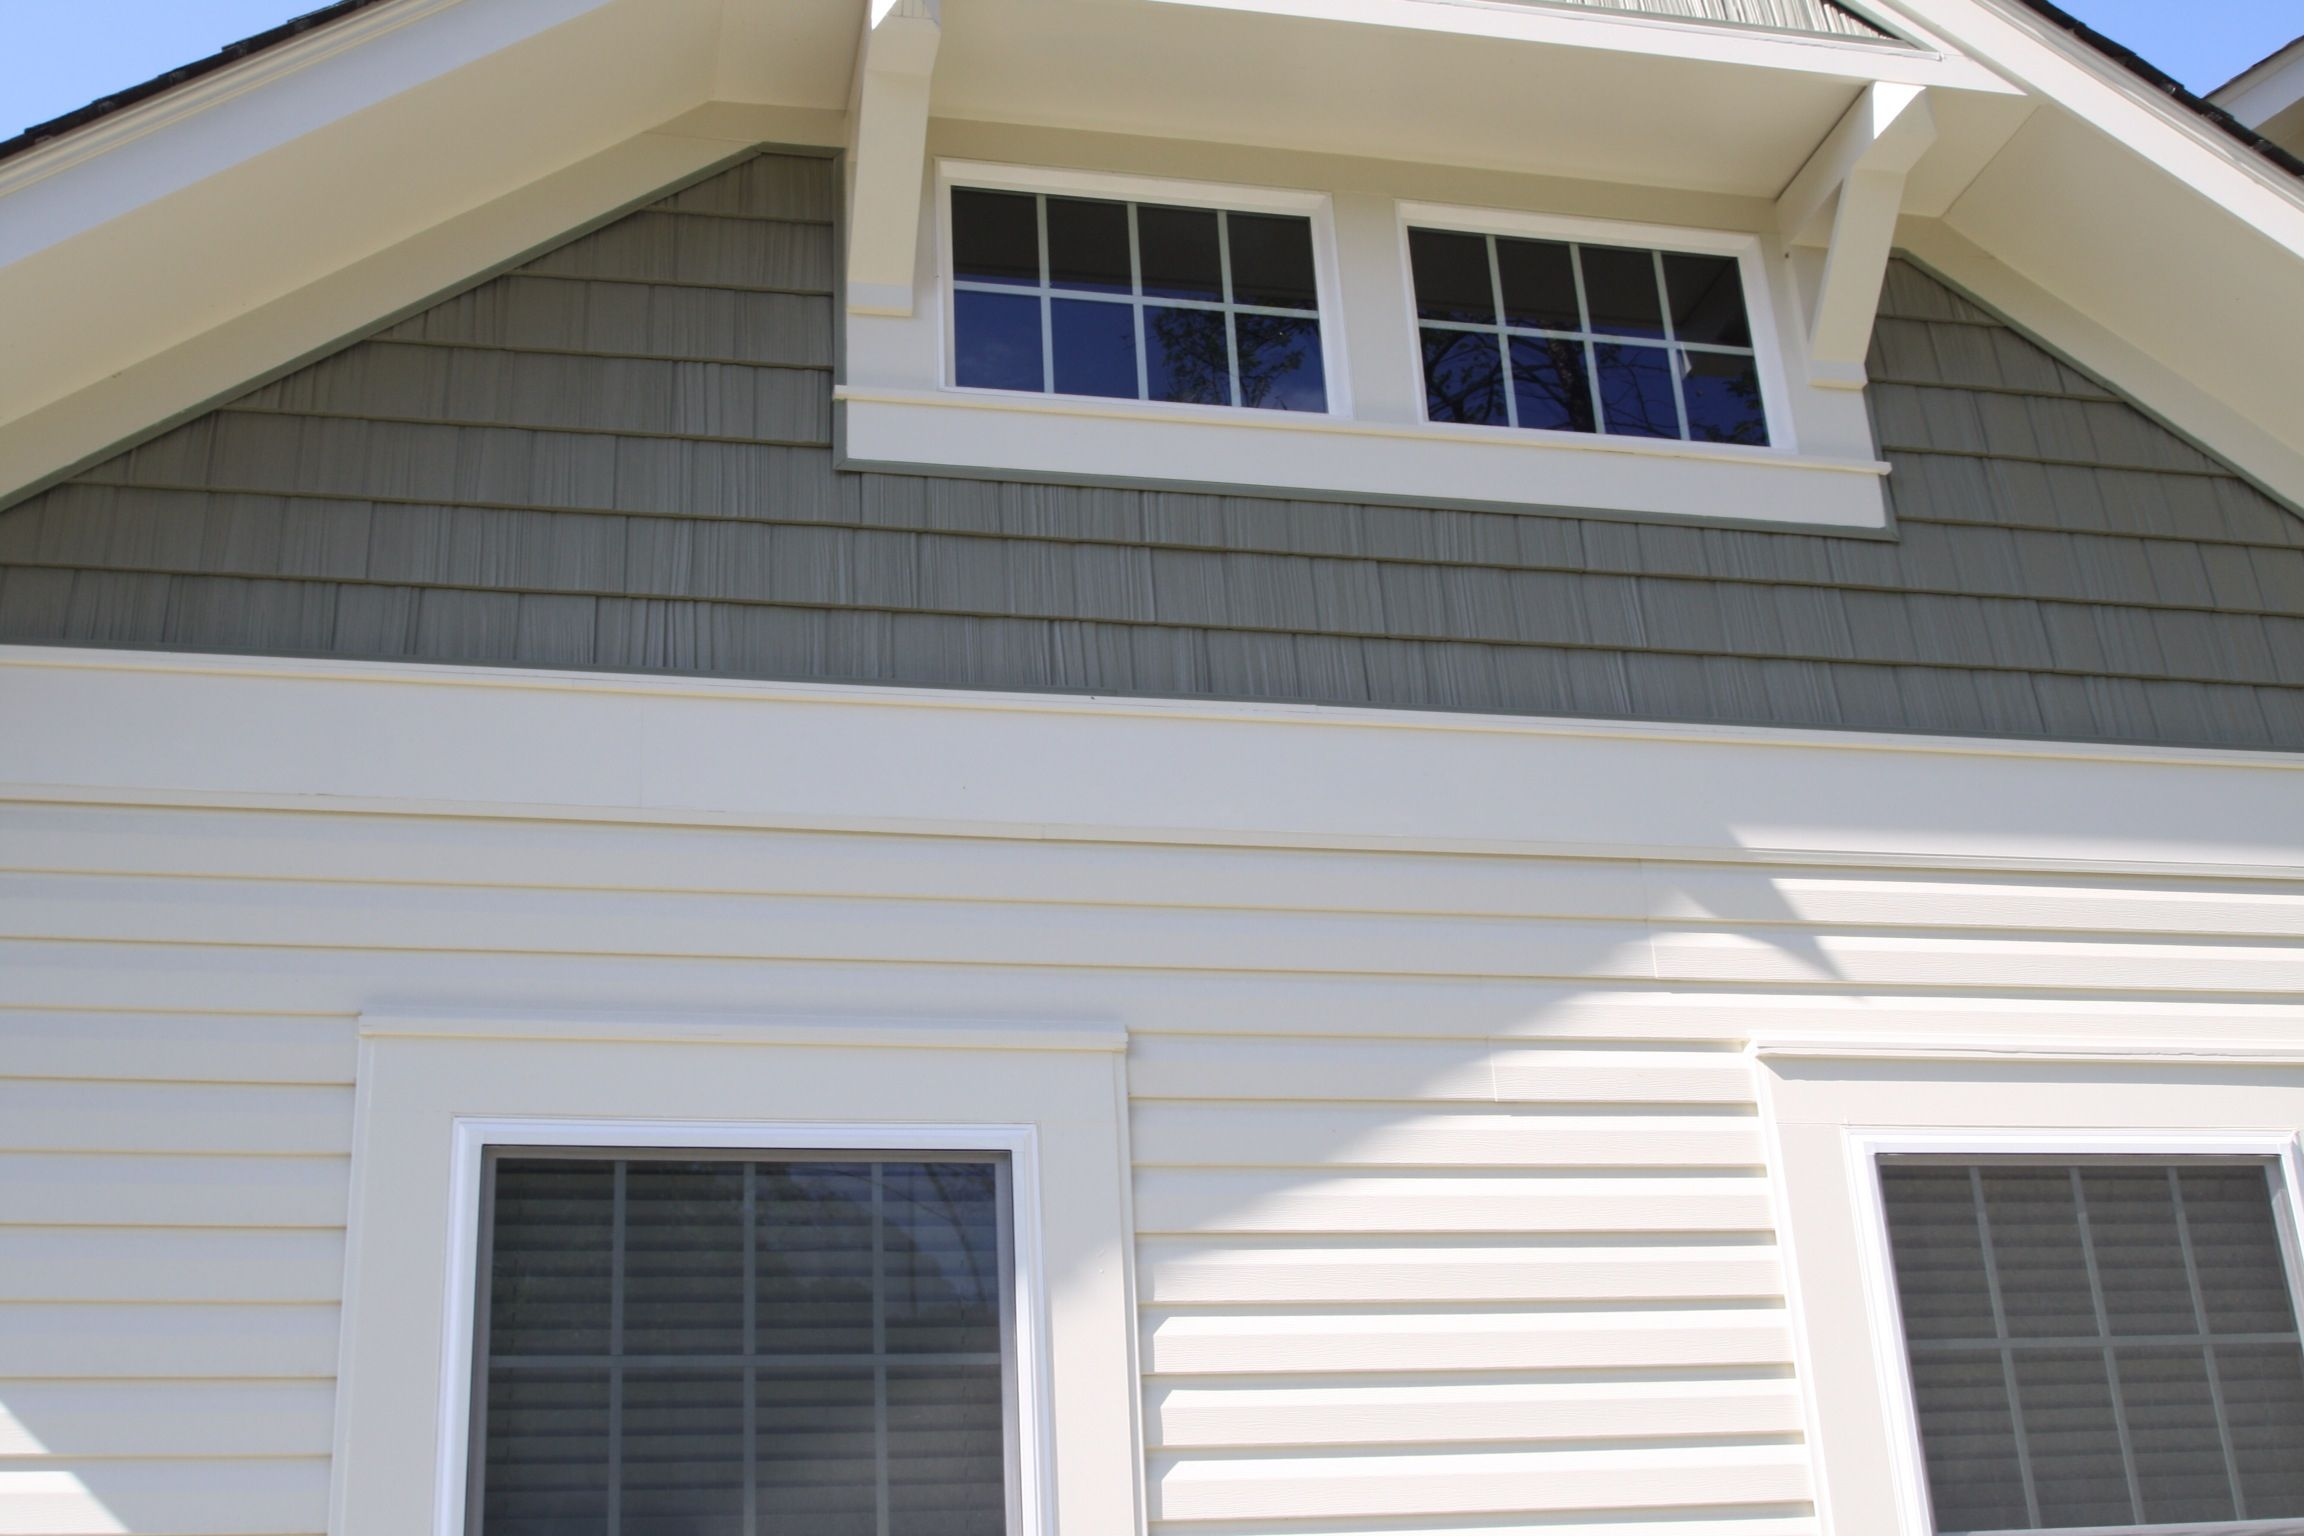 Siding colors house ideas pinterest for Siding colors for homes